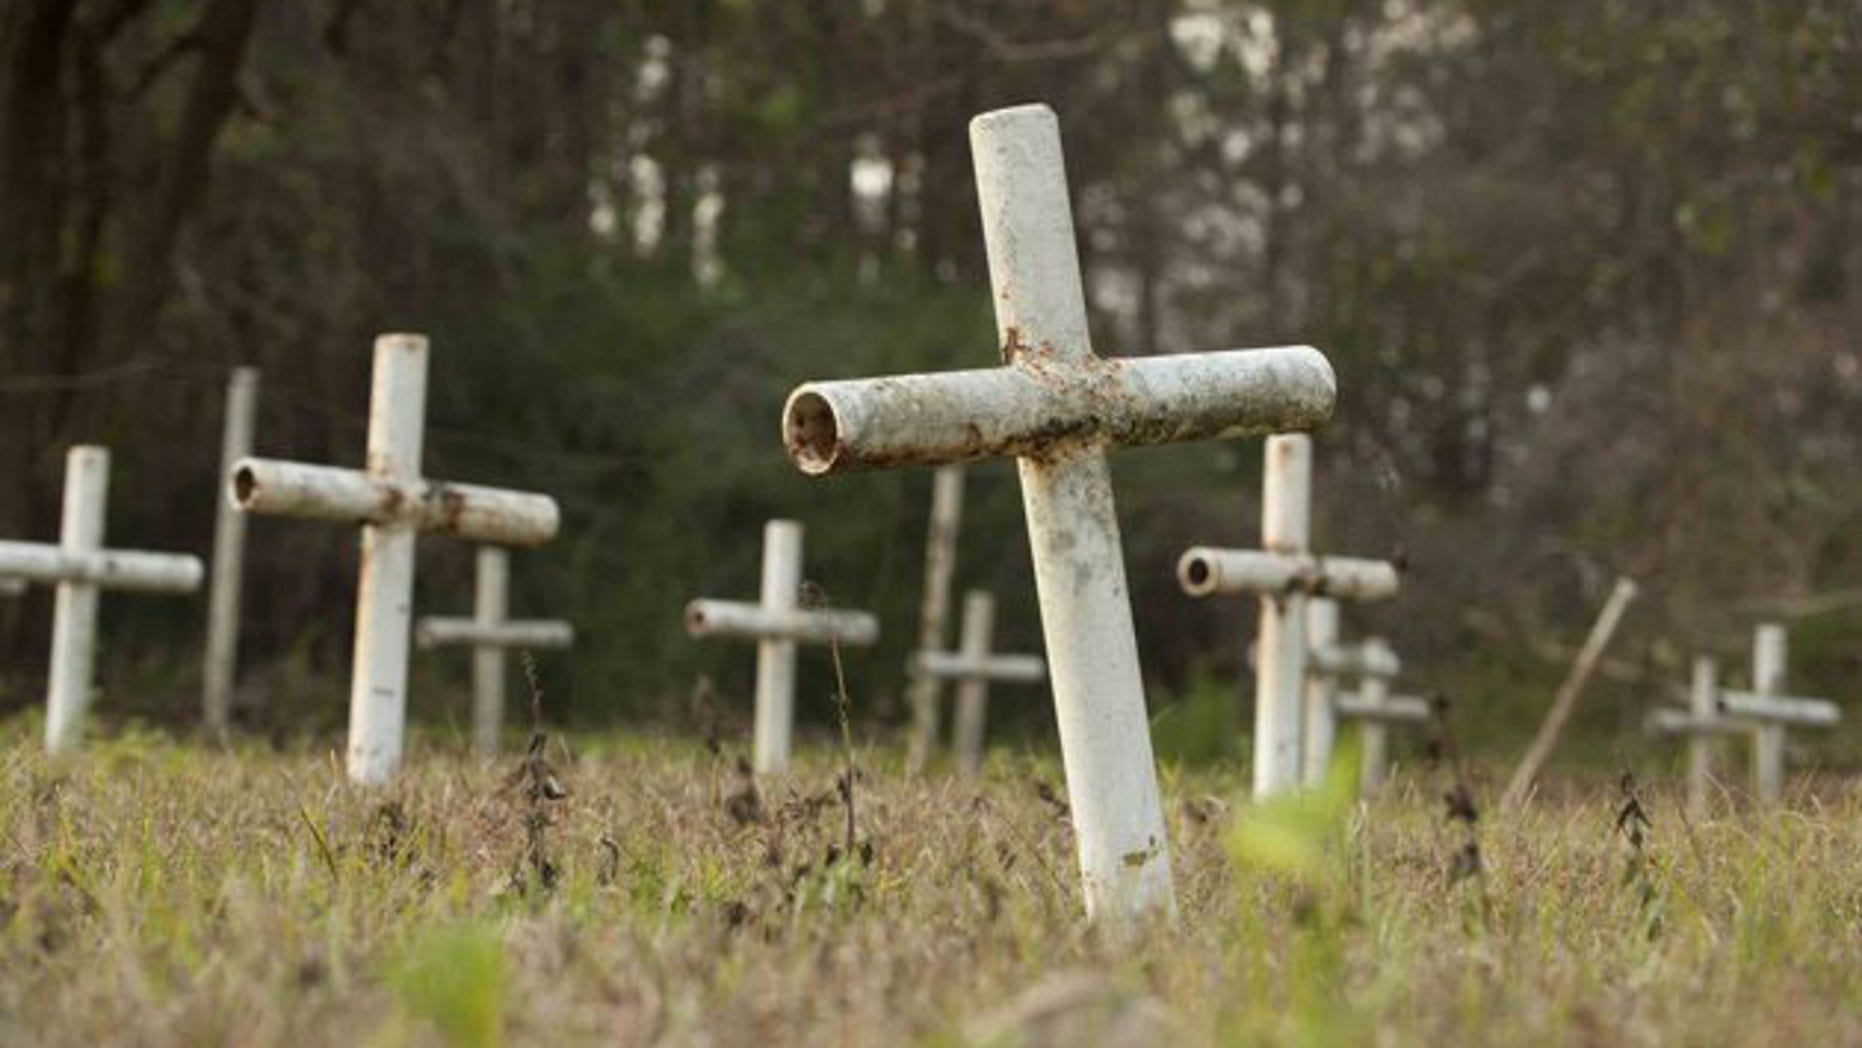 Unaccounted graves found at reform school in Florida